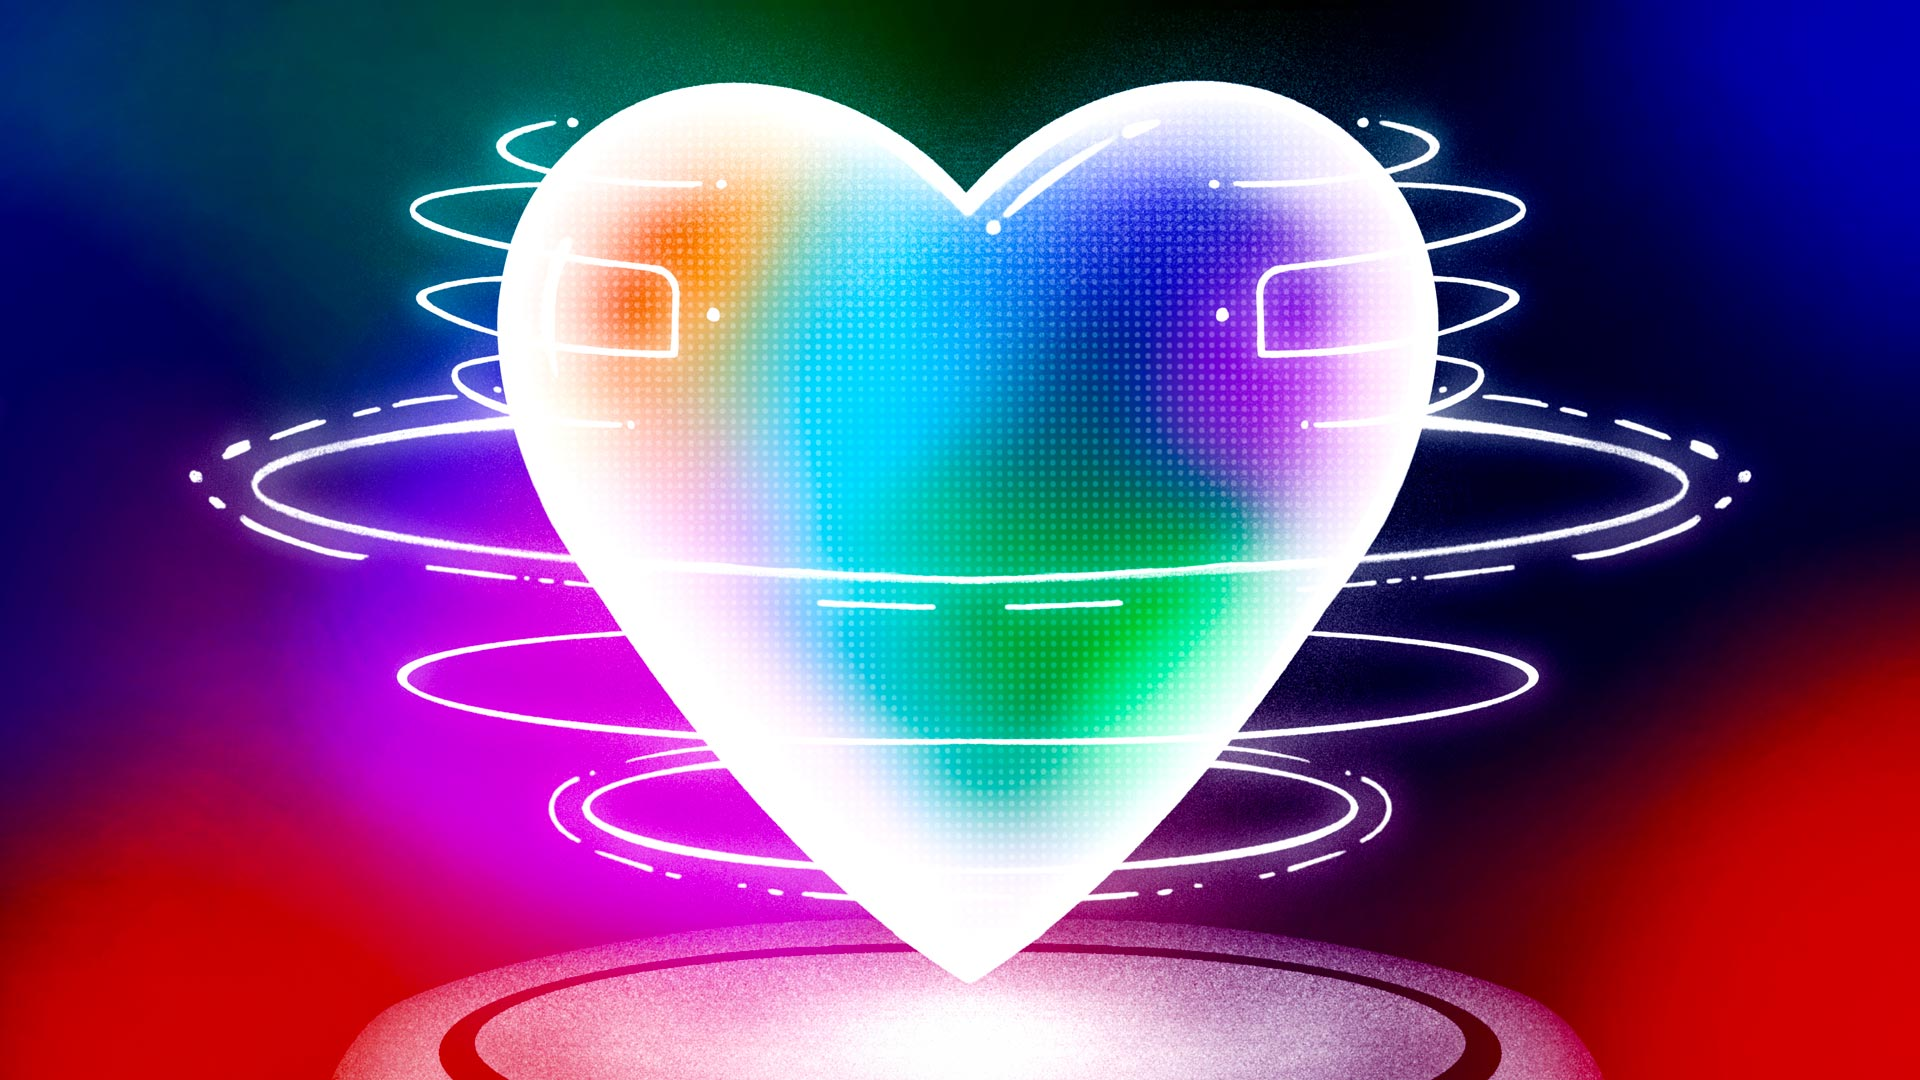 A neon-bright robot heart spins hypnotically in the middle of a darkly-colorful background.